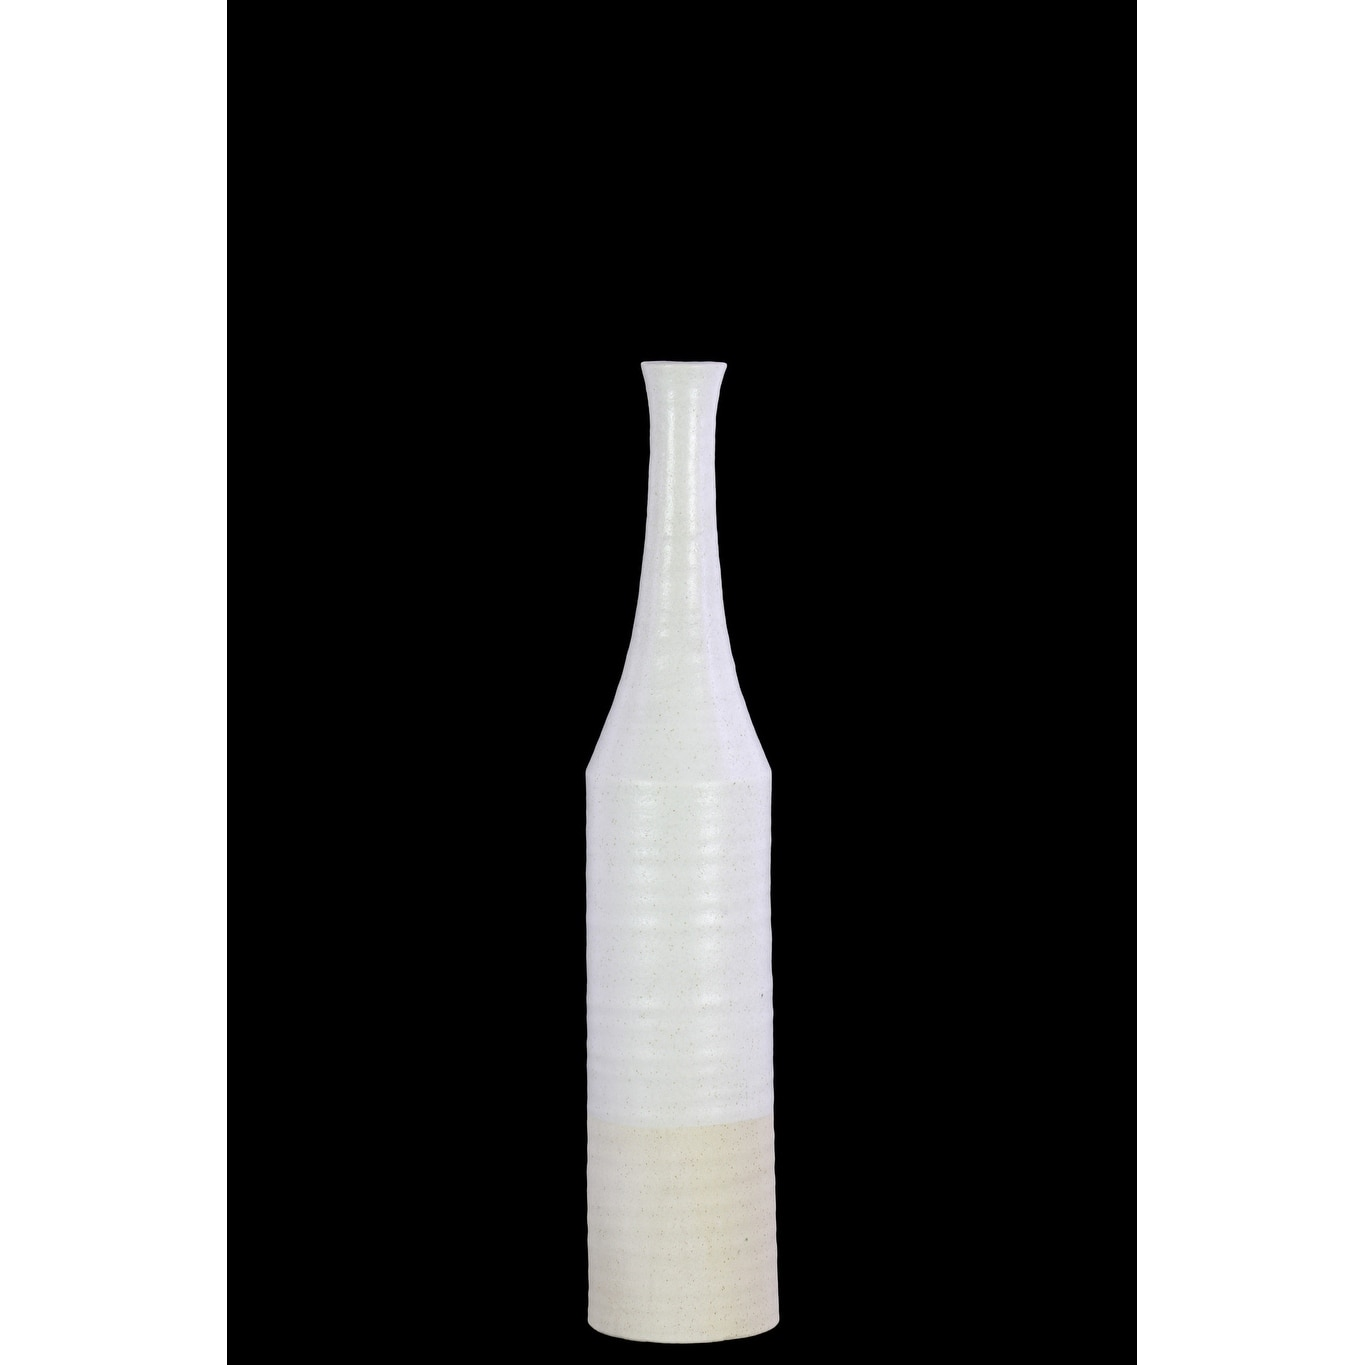 Silver//White Urban Trends 46319 Ceramic Bottle Vase with Narrow Mouth